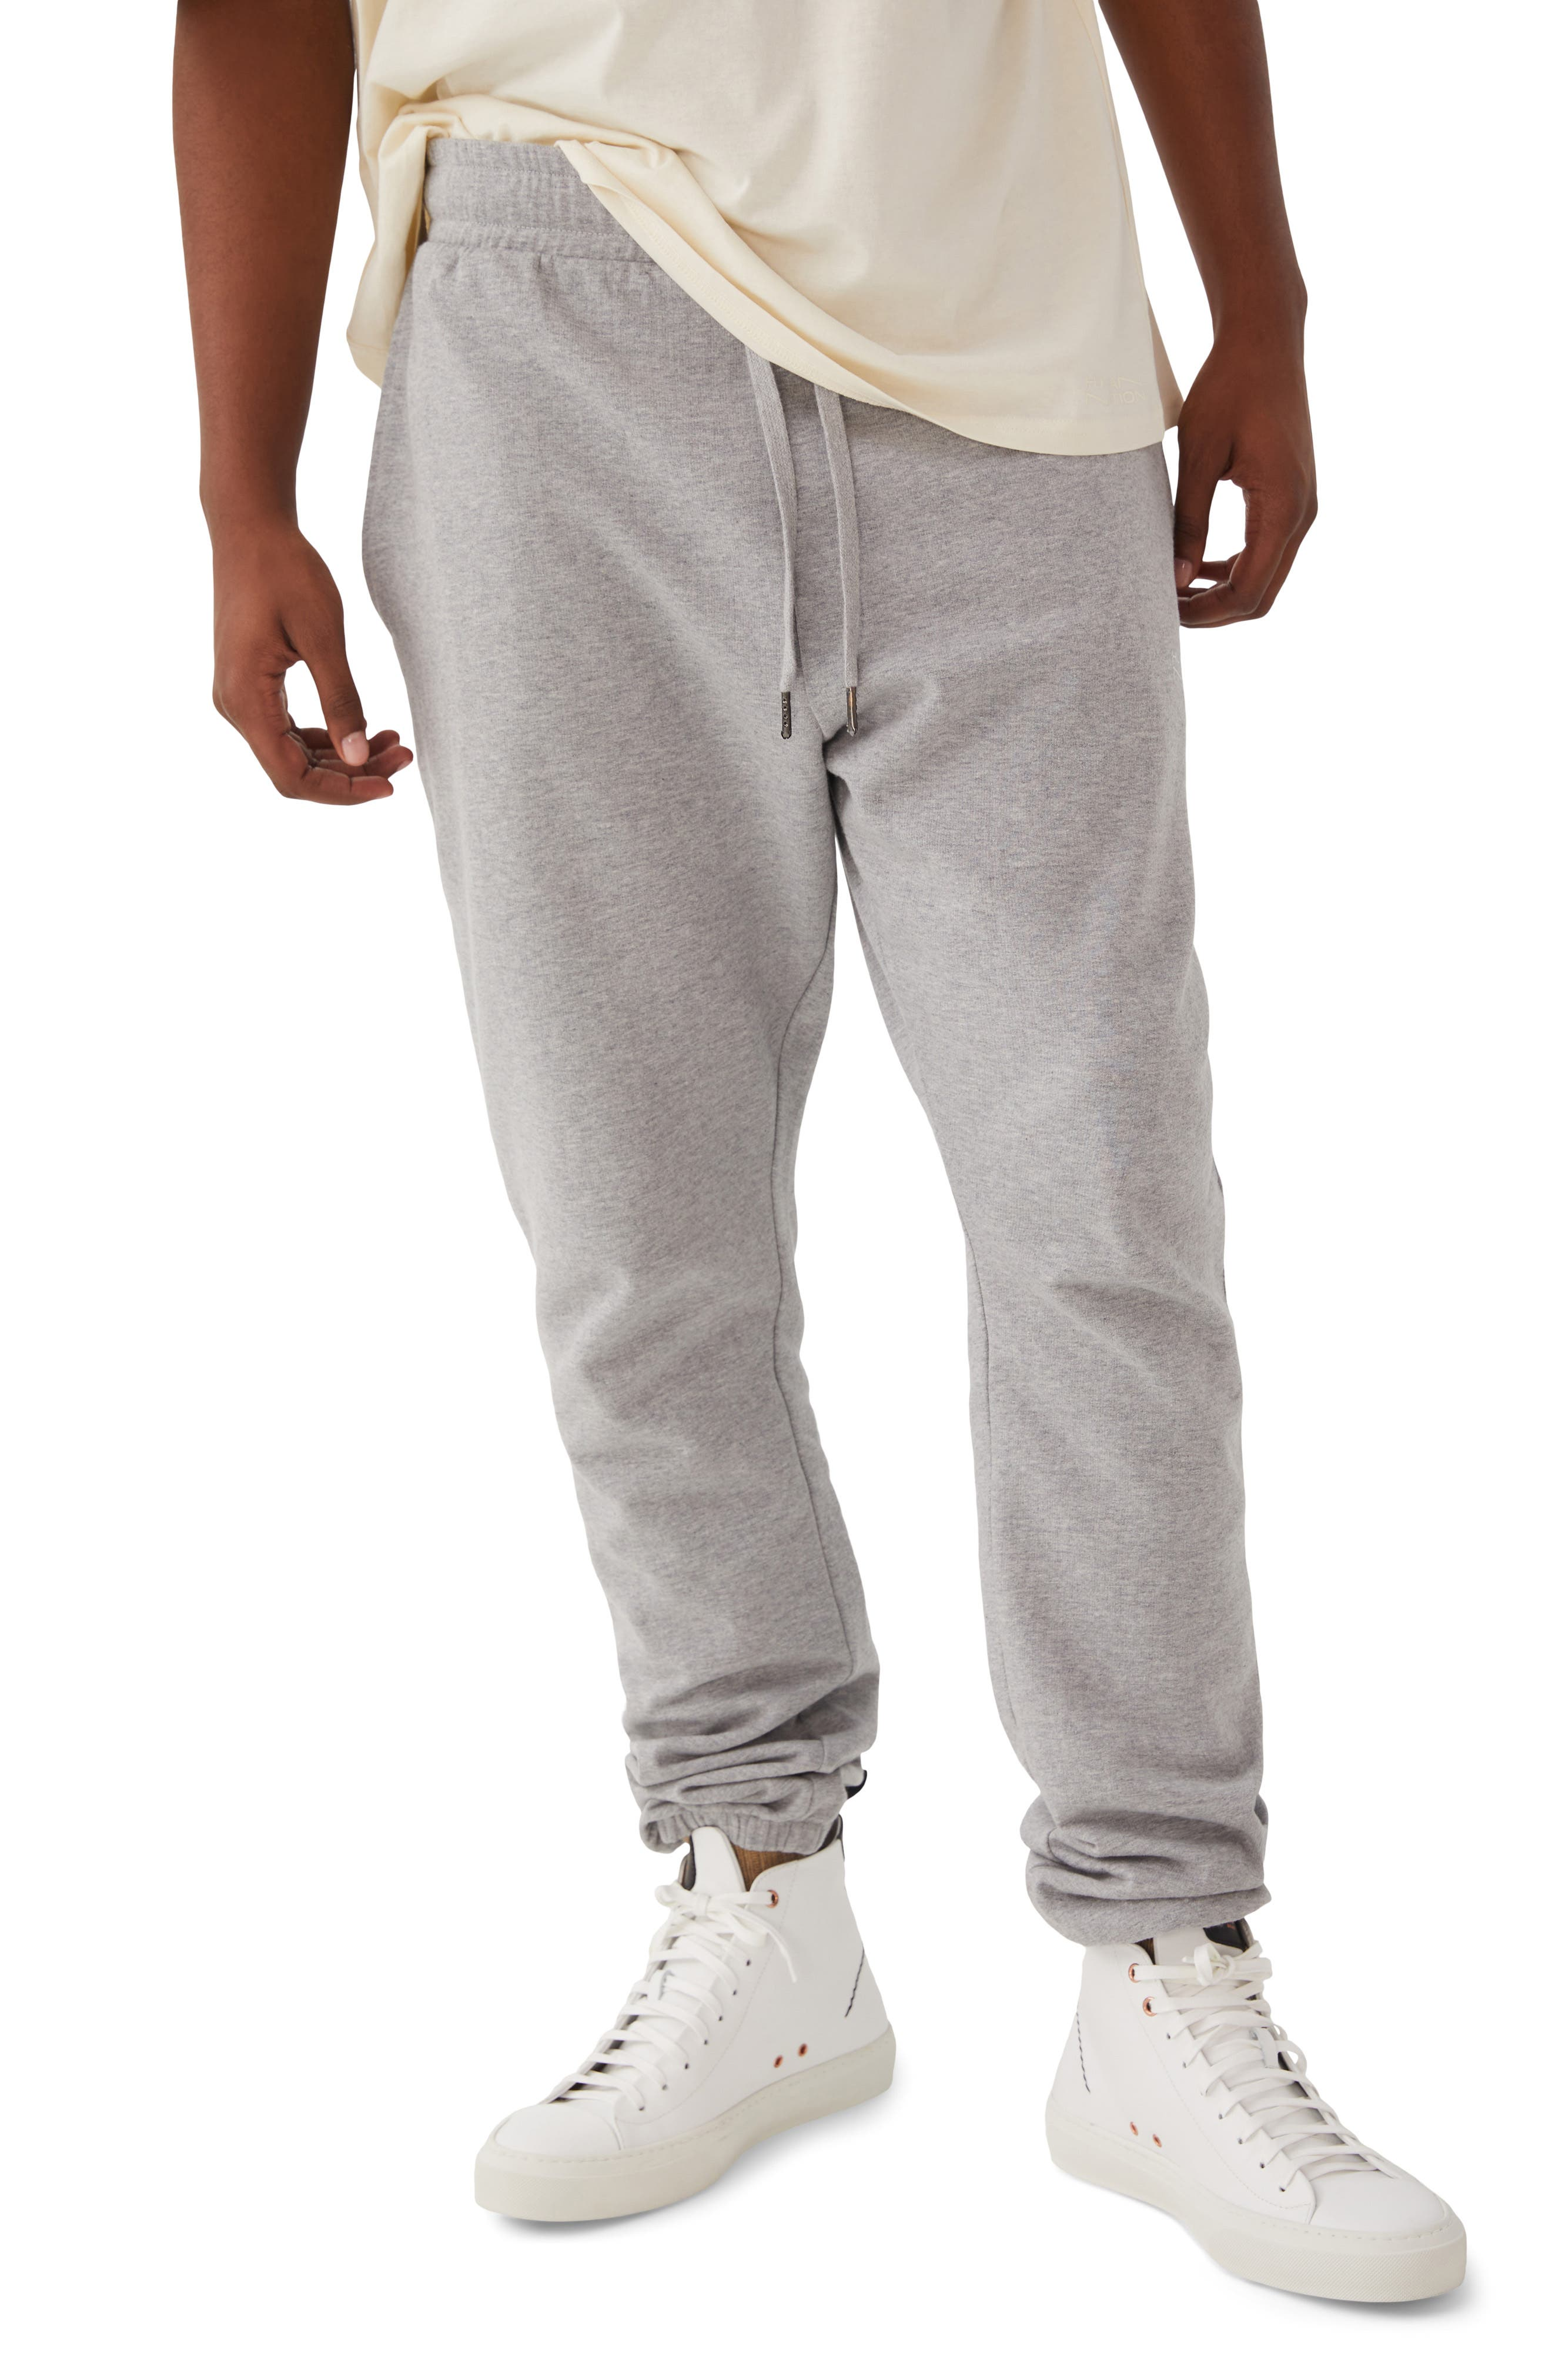 Gender Inclusive Heathered Organic Cotton Blend Joggers